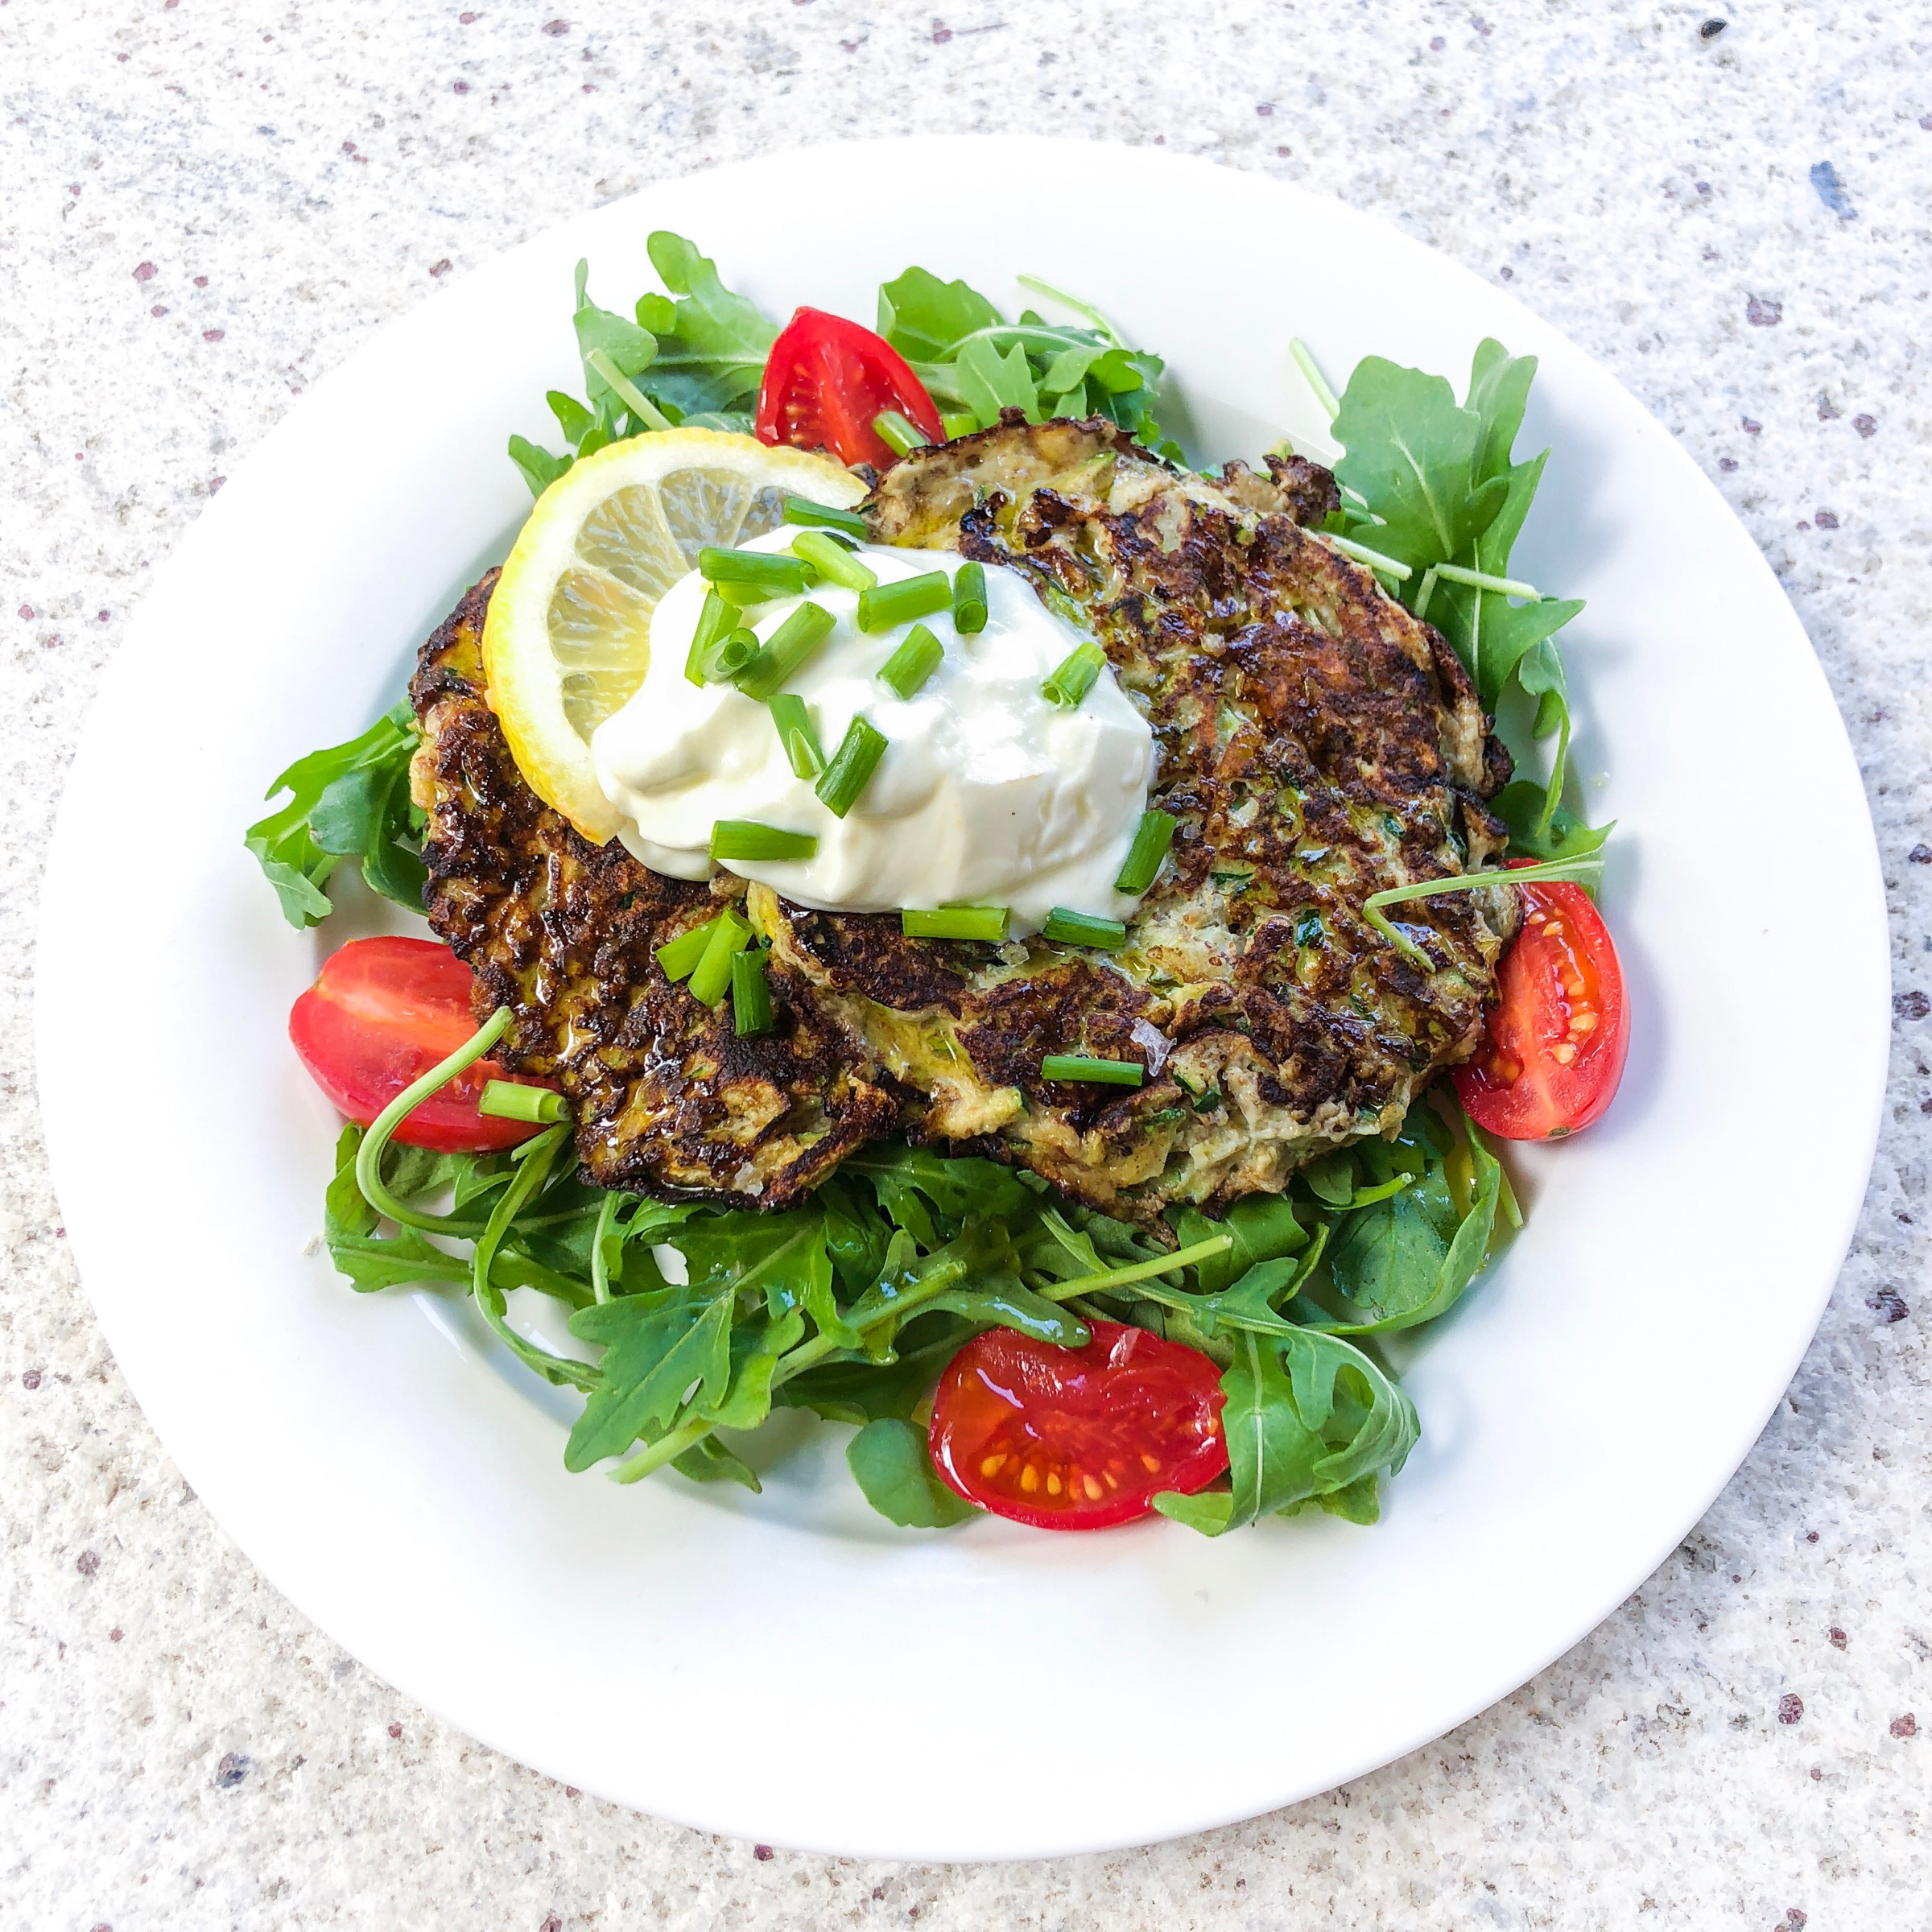 5 Ingredient Keto Zucchini Fritters